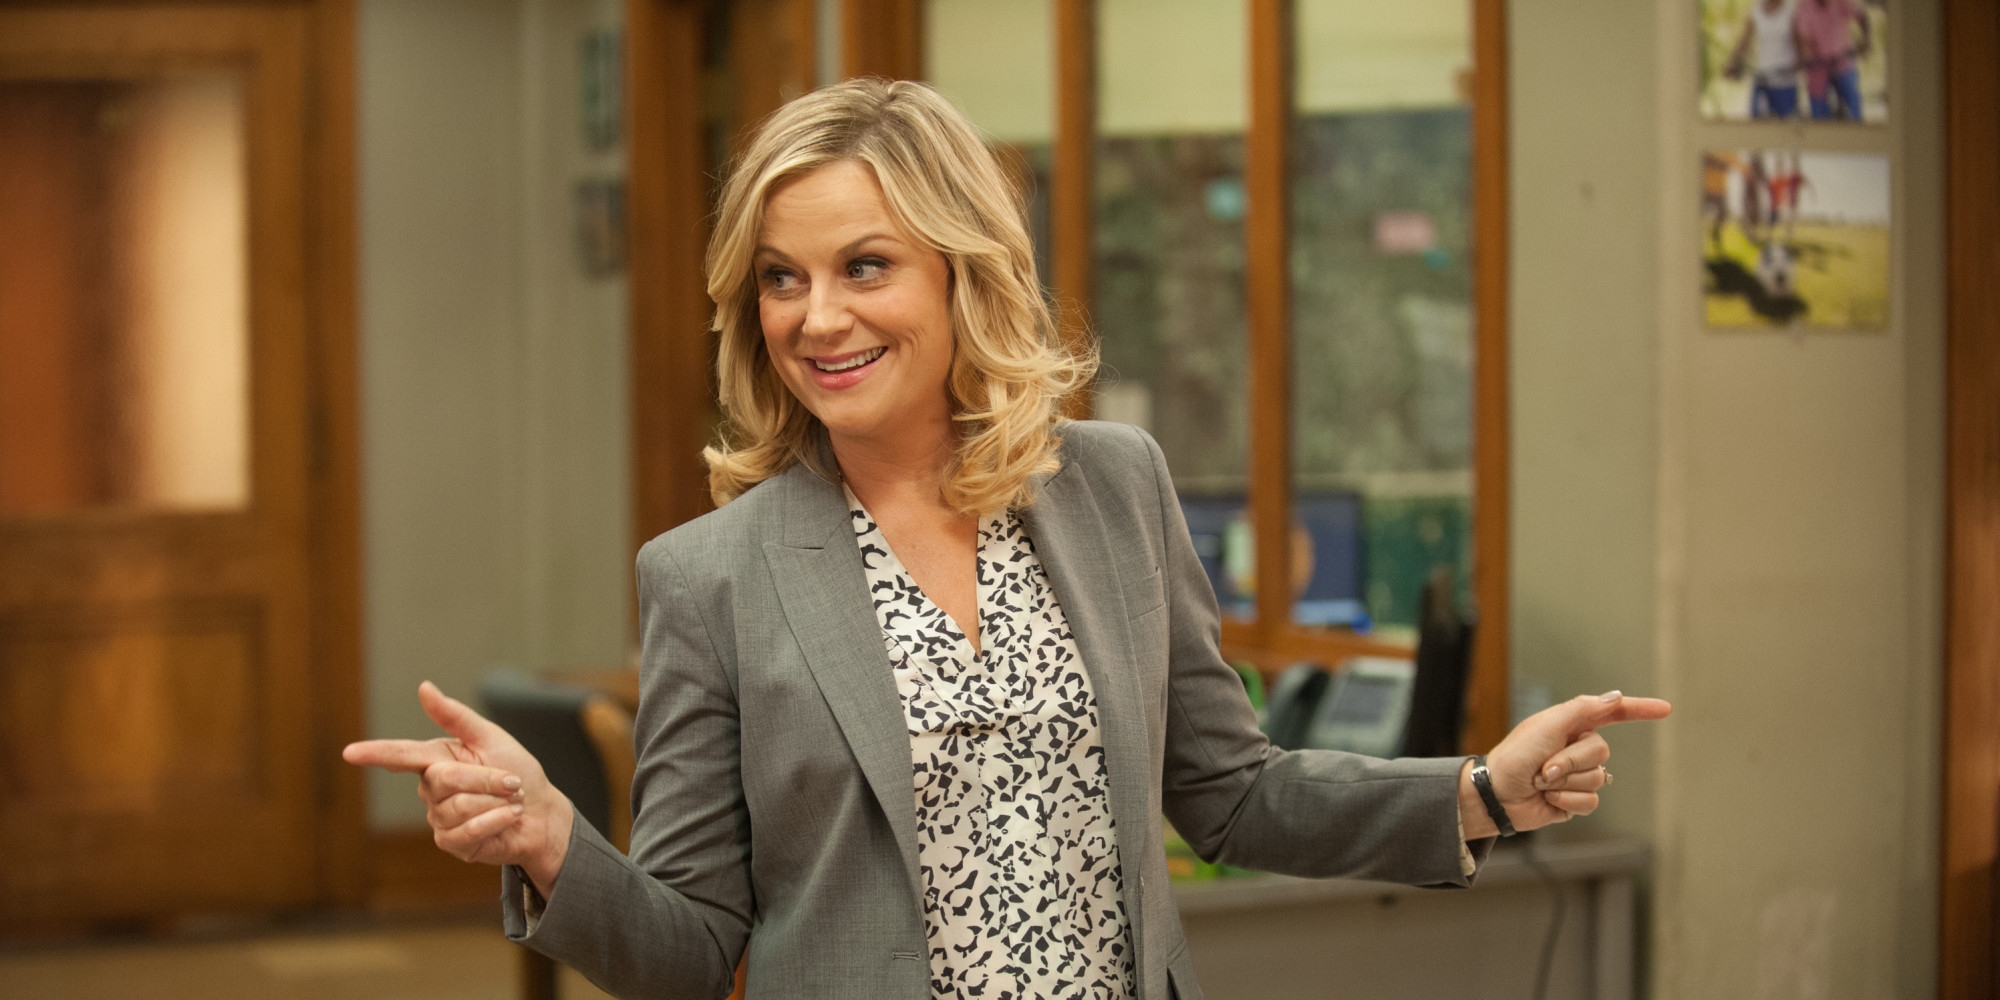 o-AMY-POEHLER-PARKS-AND-RECREATION-facebook2.jpg